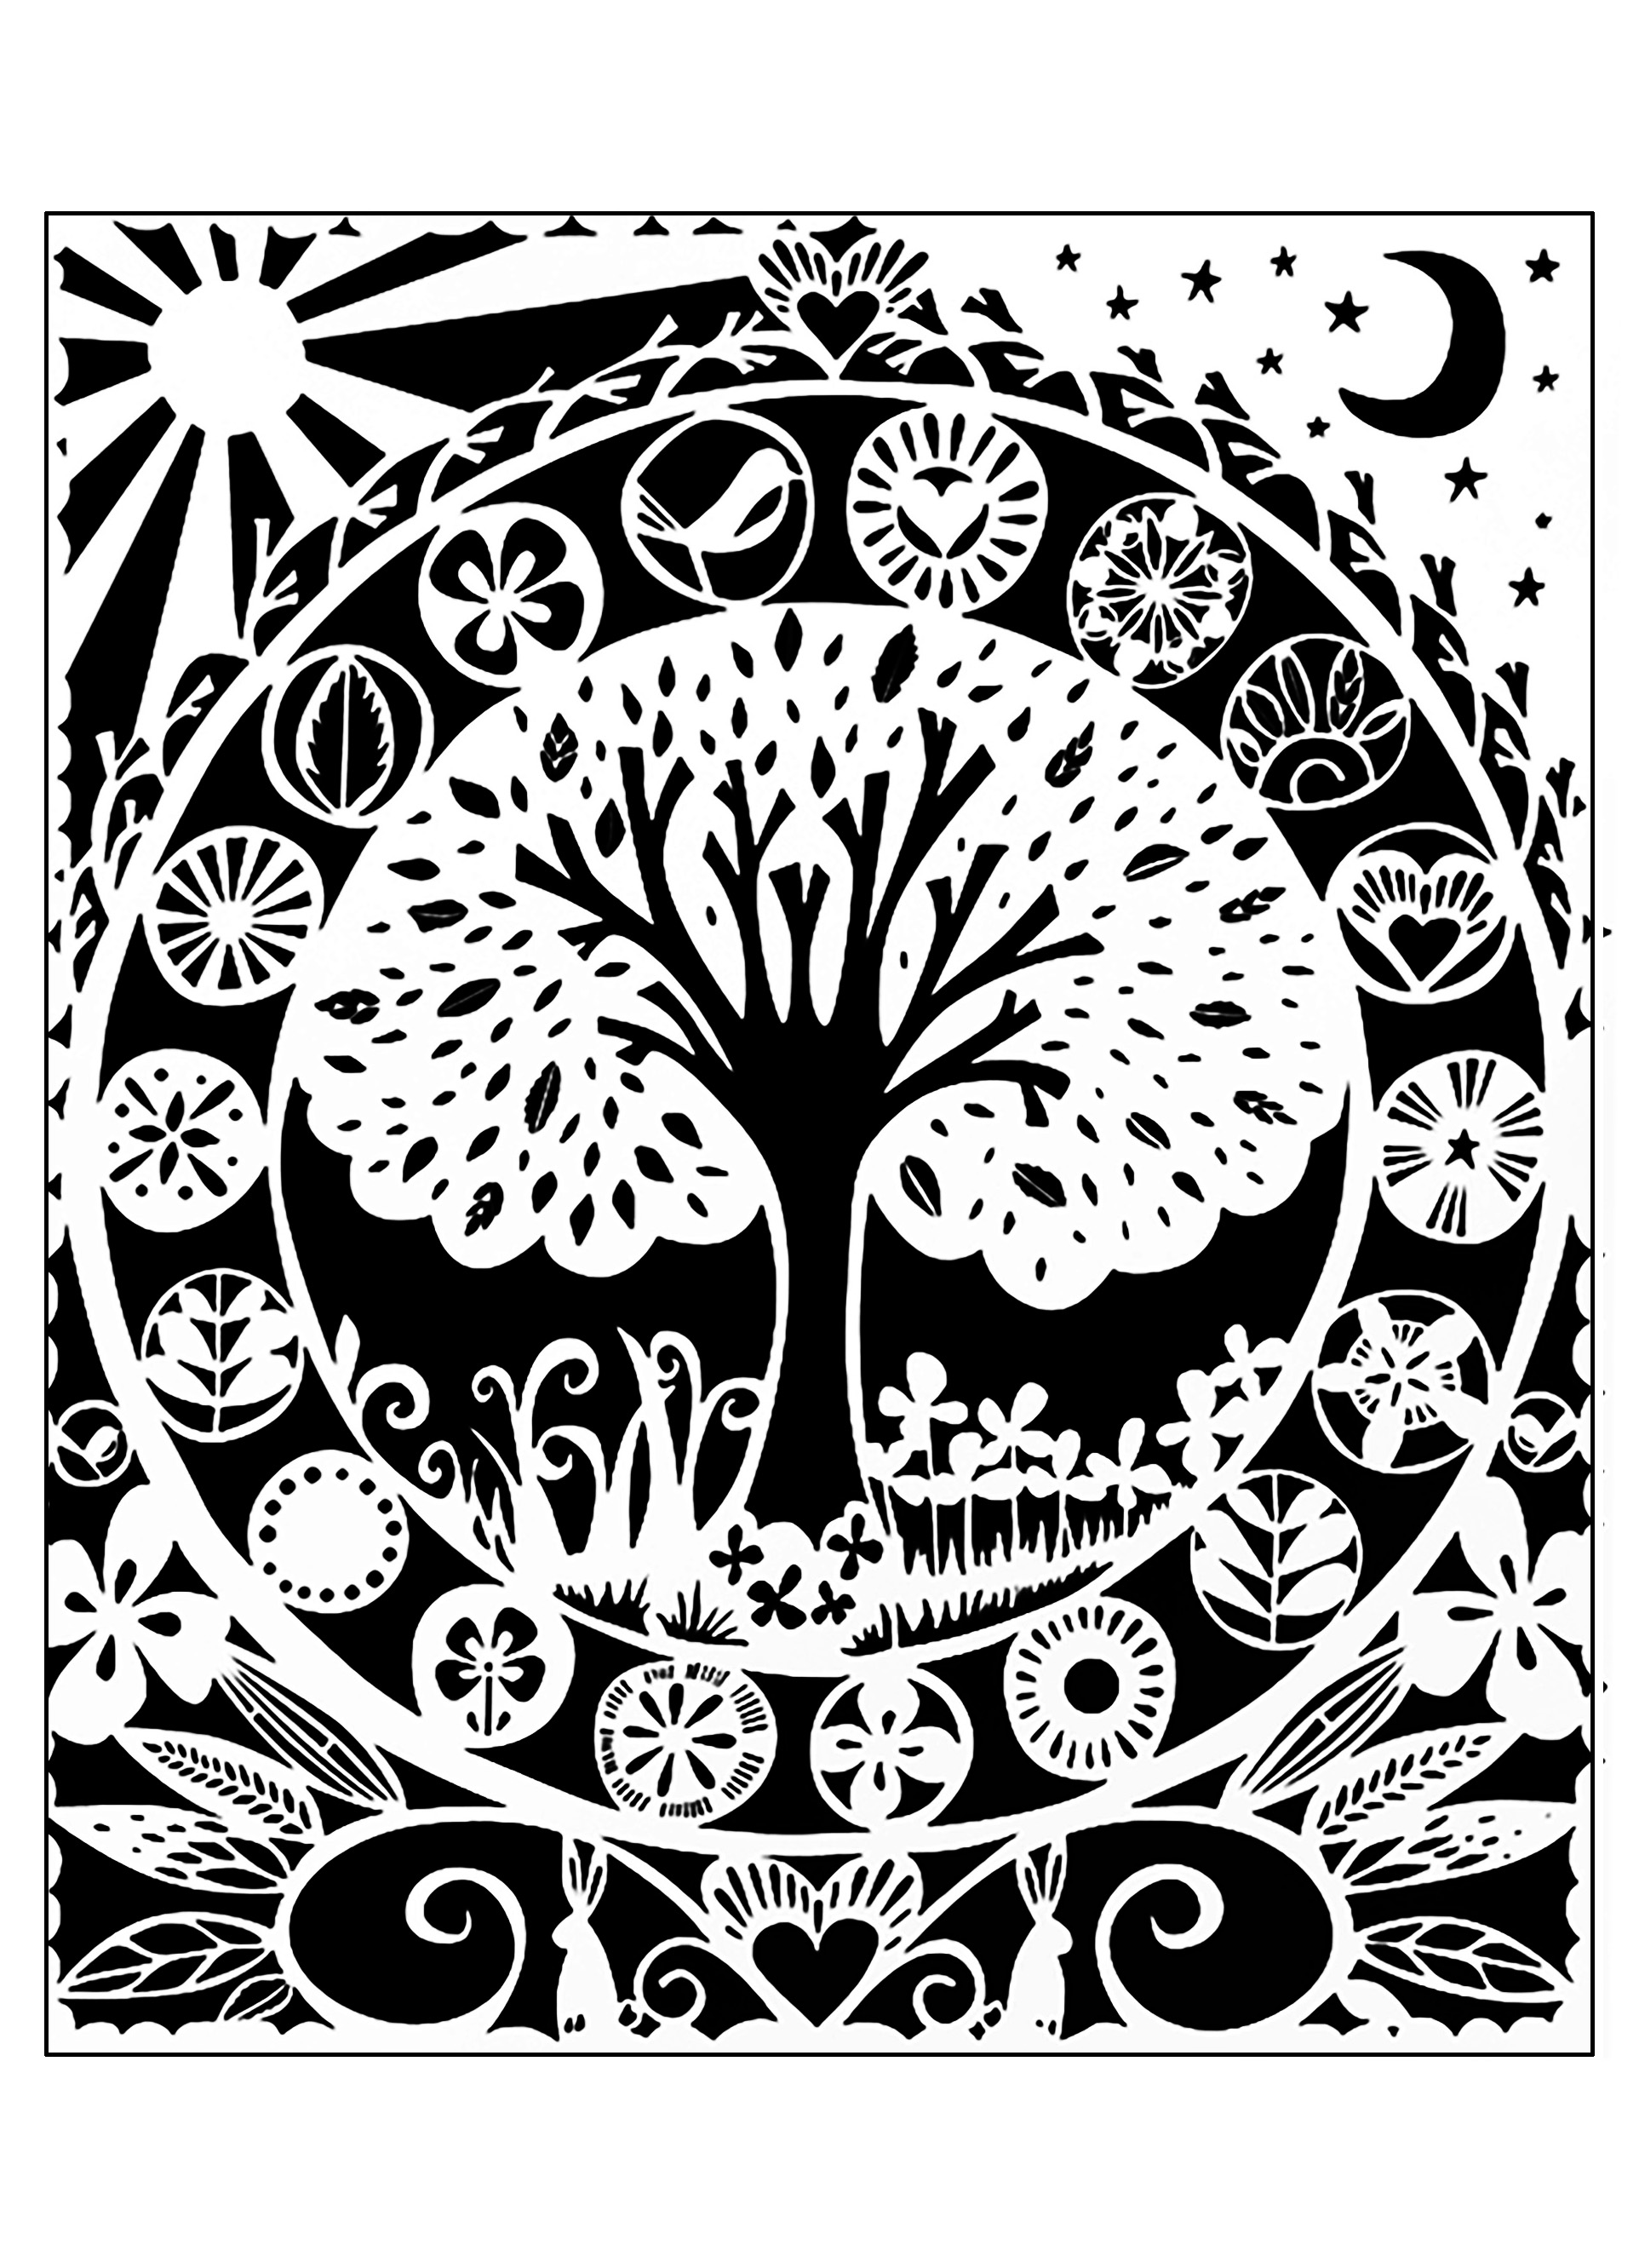 Coloring adult tree white black